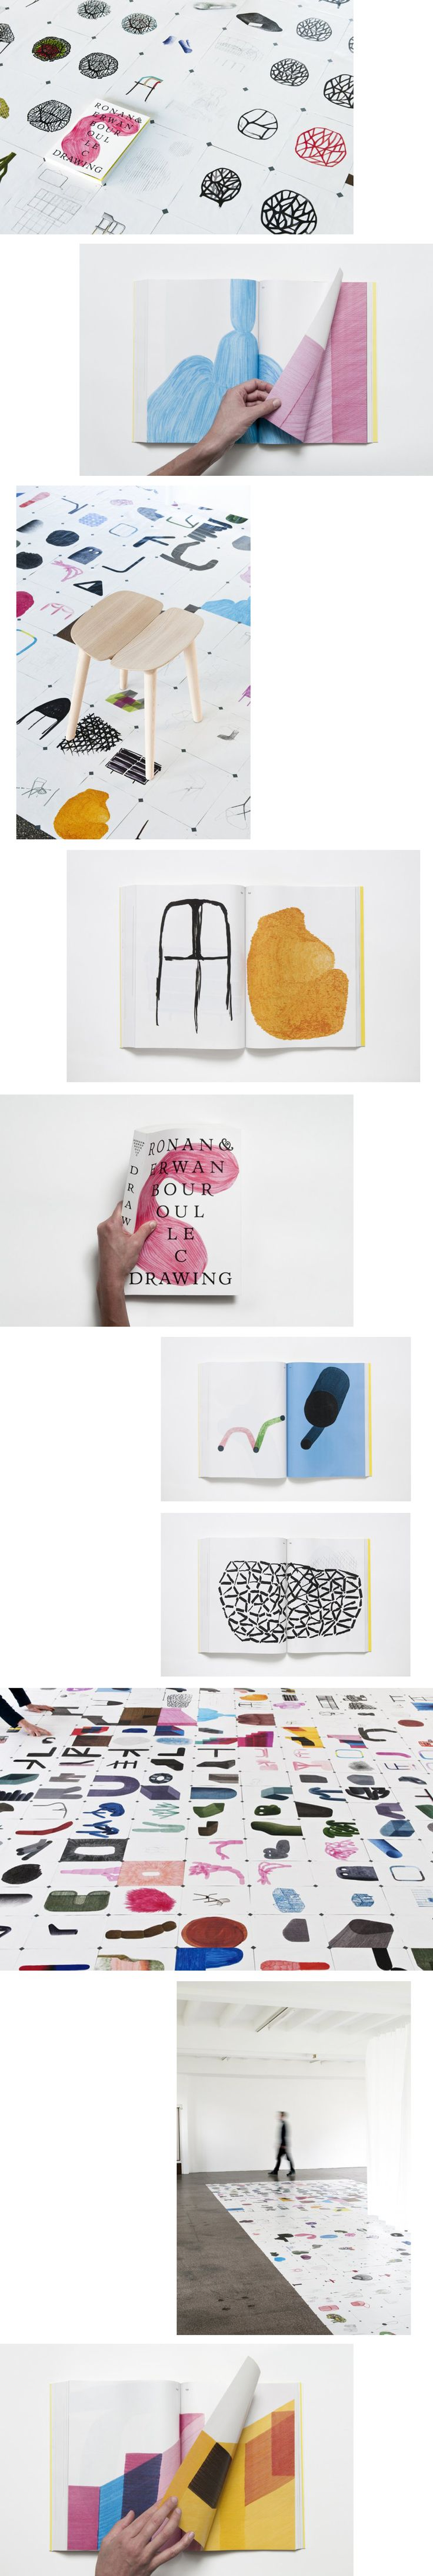 RONAN + ERWAN BOUROULLEC - launched their new book: 'Drawing'. #design #drawings #sketches